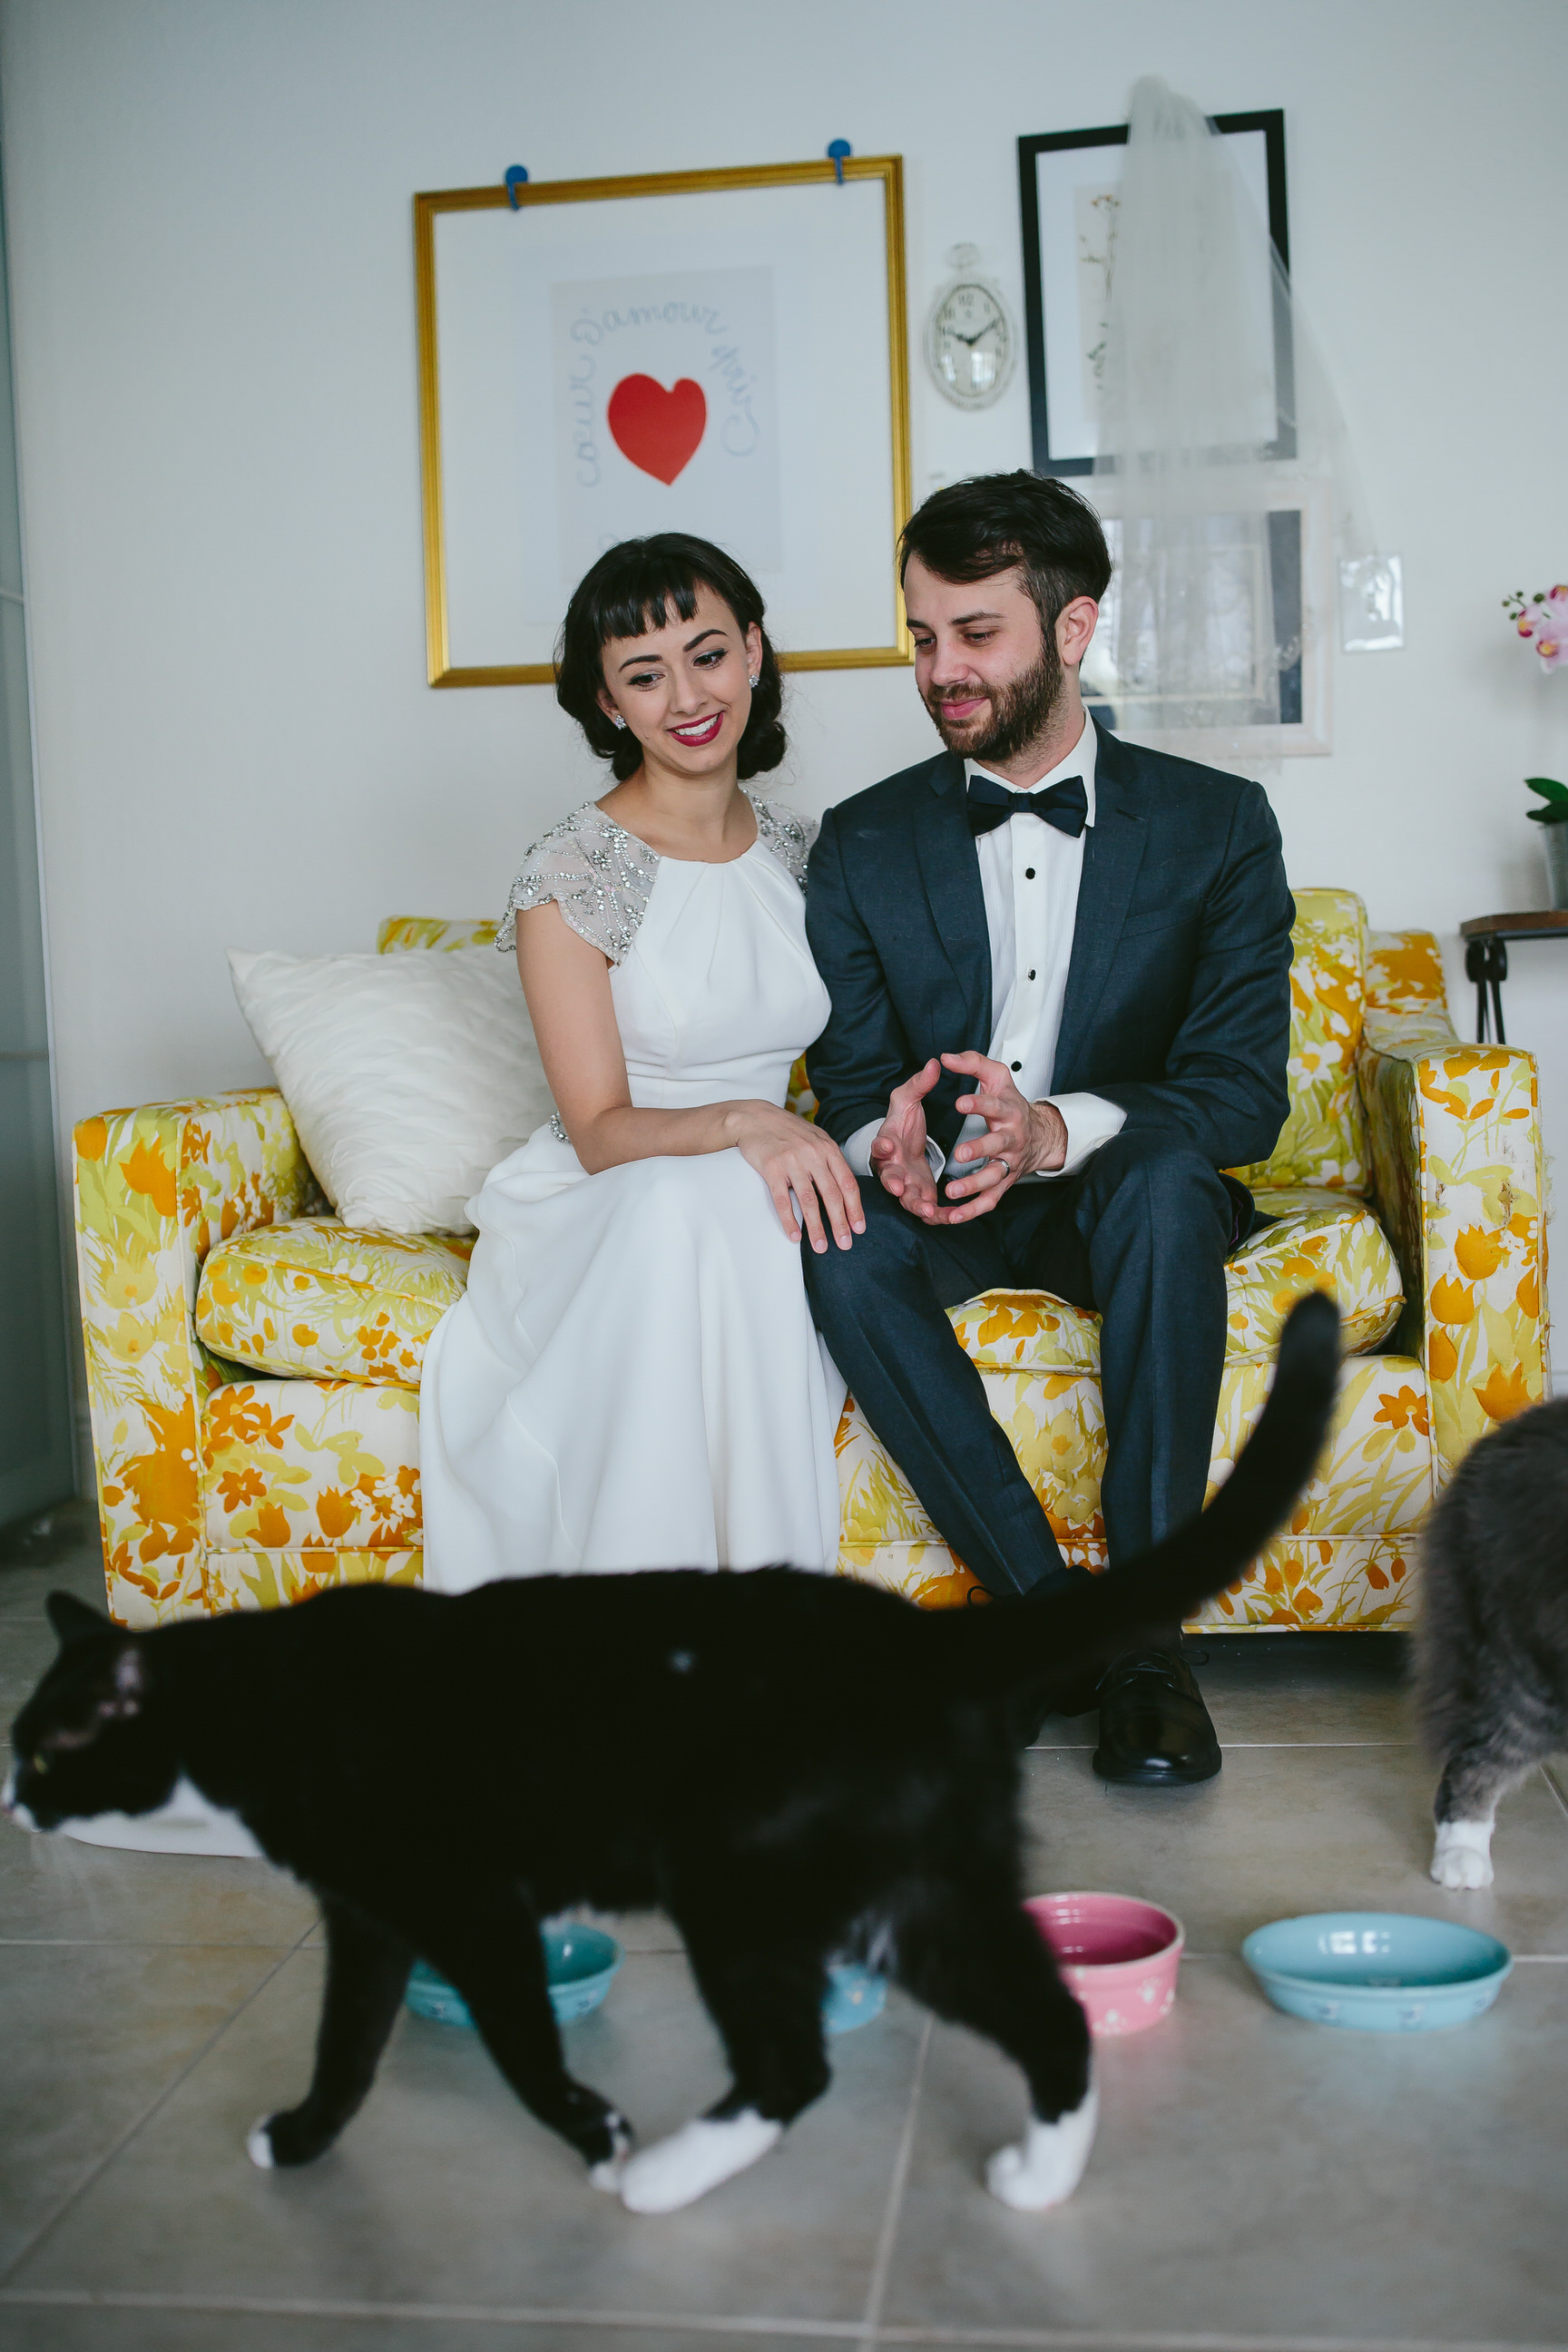 bride_and_groom_cats_in_home_session_wedding_fort_lauderdale_photographer_steph_lynn_photo-71.jpg